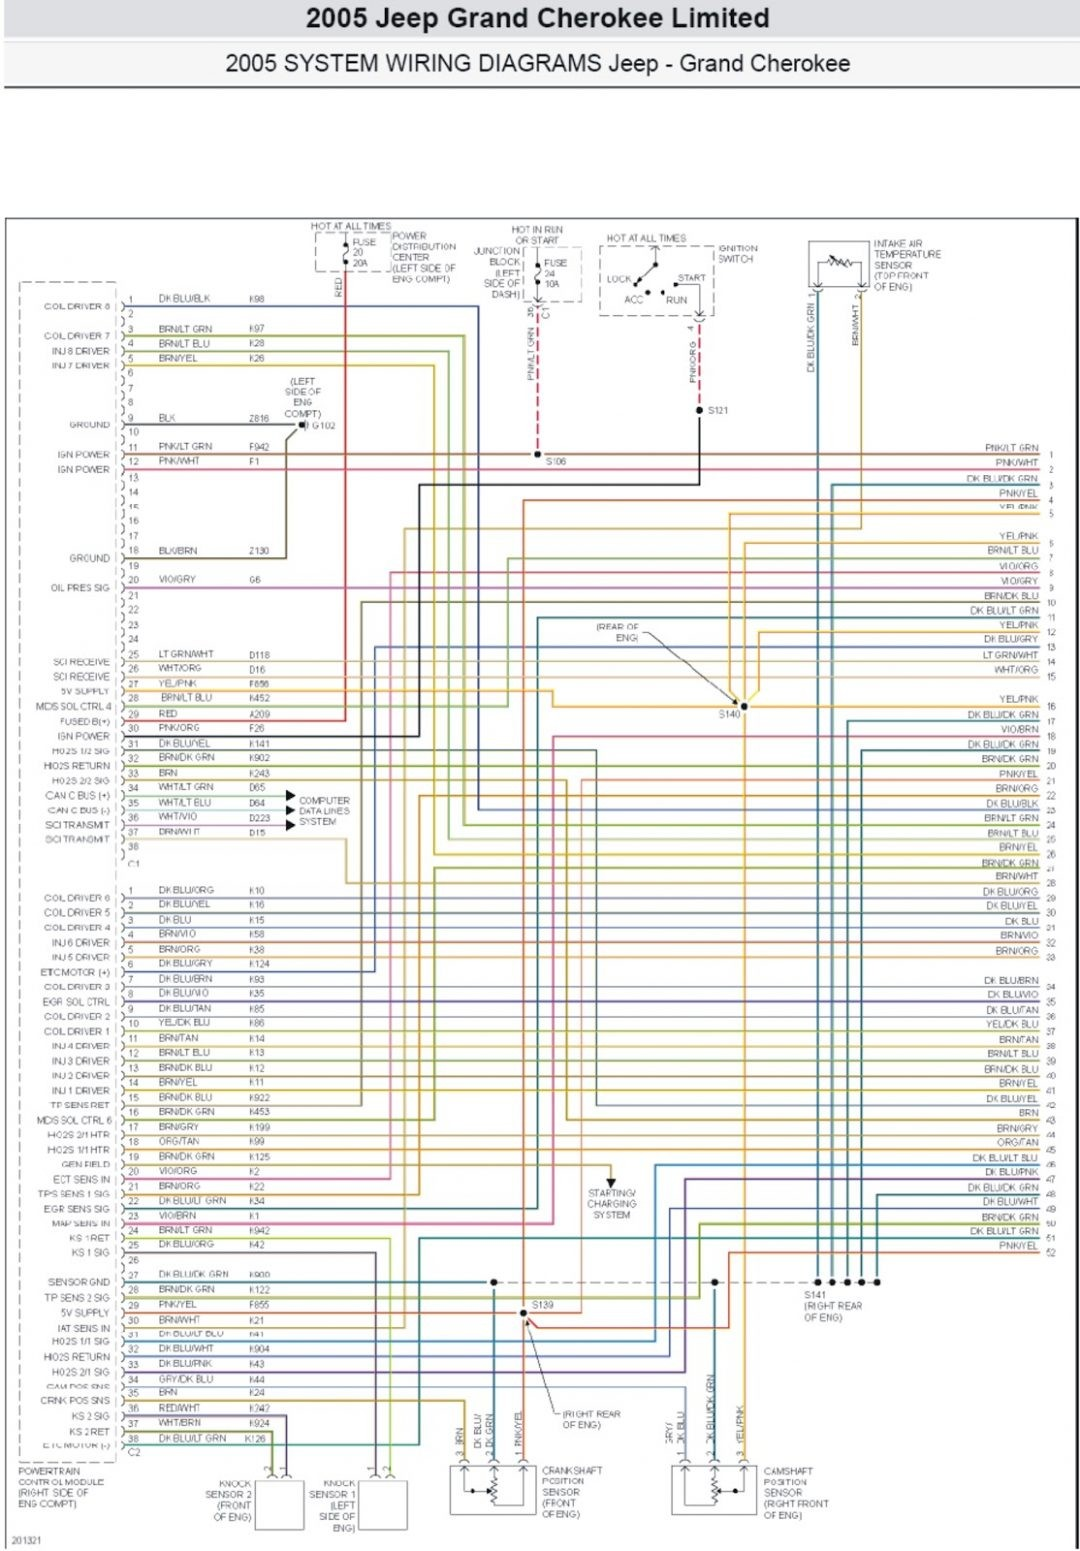 Jeep Cherokee Radio Wiring Diagramh Wrangler Yj For Grand 2001 Diagram Wires Electrical System Lines Physical